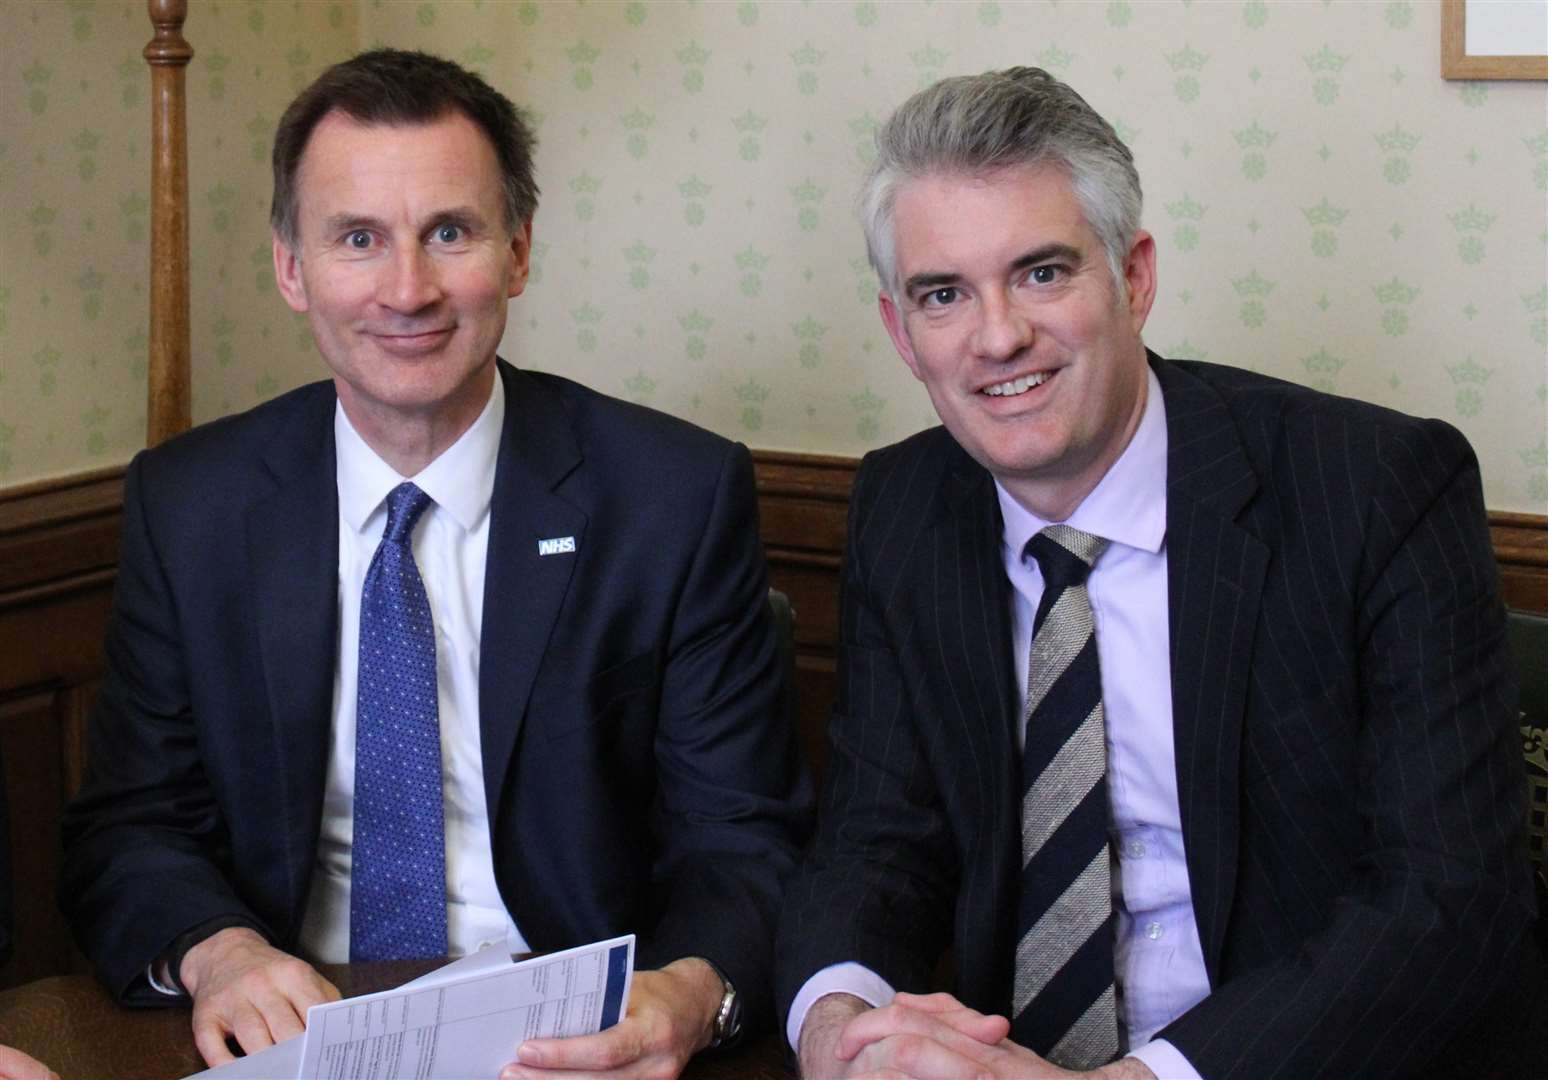 South Suffolk MP James Cartlidge (right) has been appointed the Parliamentary Private Seceretary to the Foreign Secretary, Jeremy Hunt. (3940994)